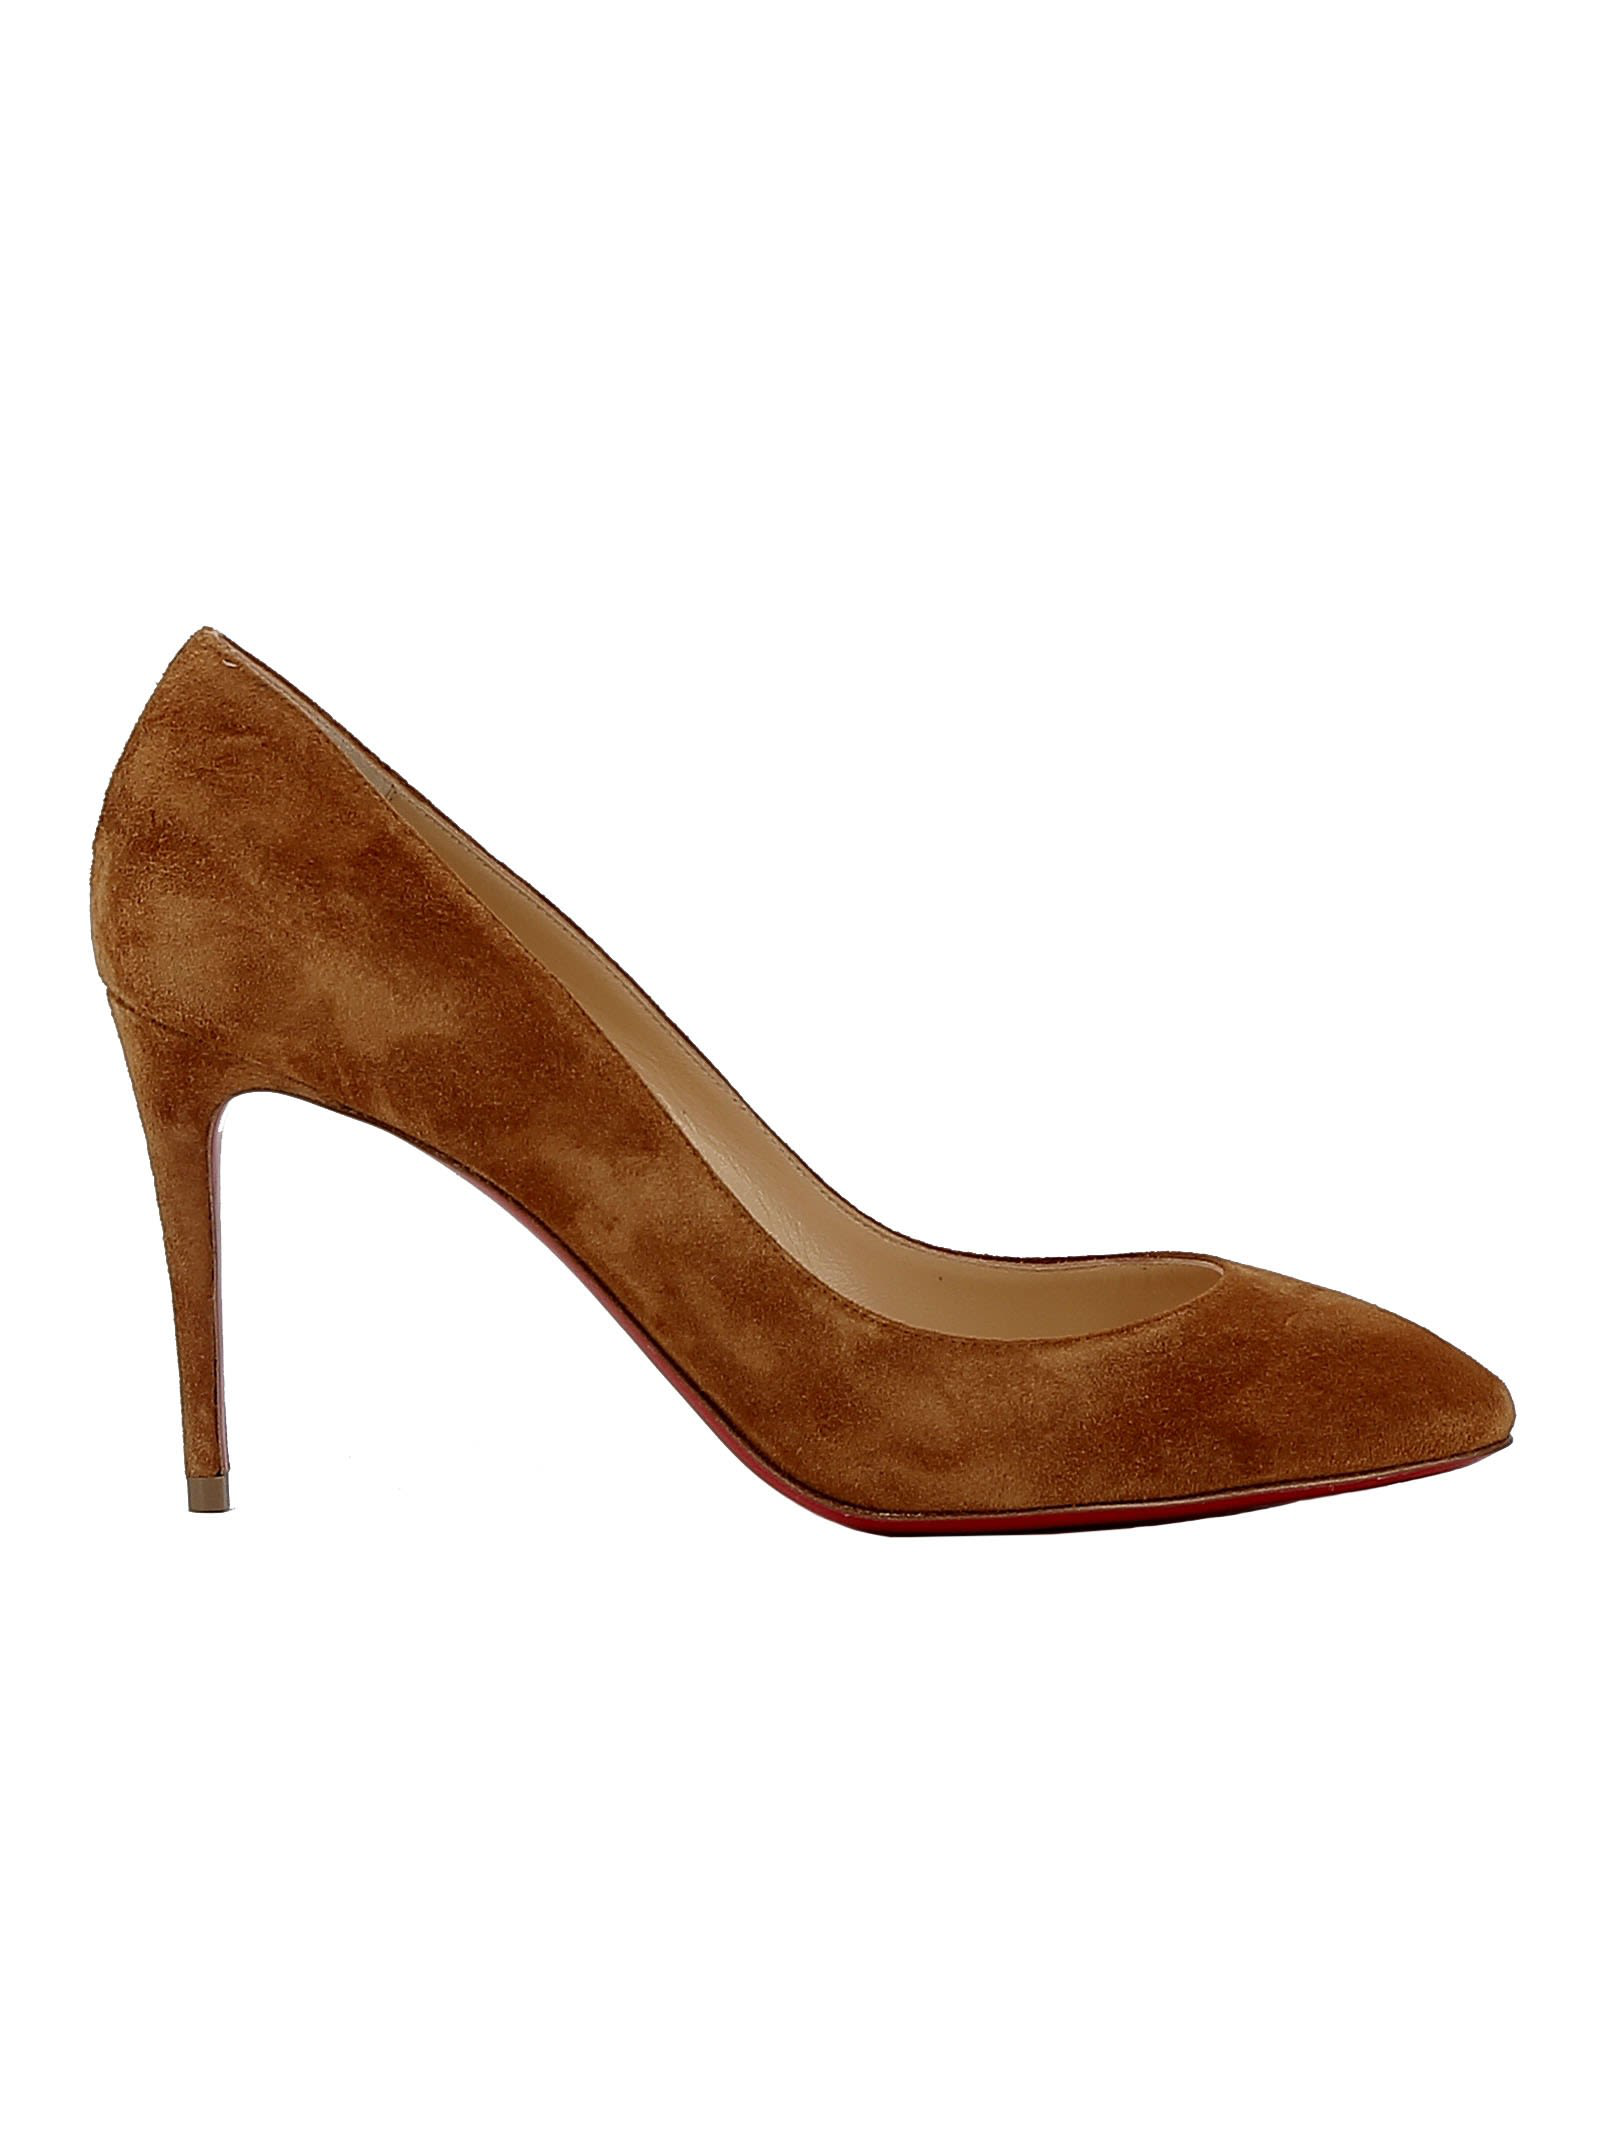 Christian Louboutin Decollete 85 Tan Suede Pumps In Brown